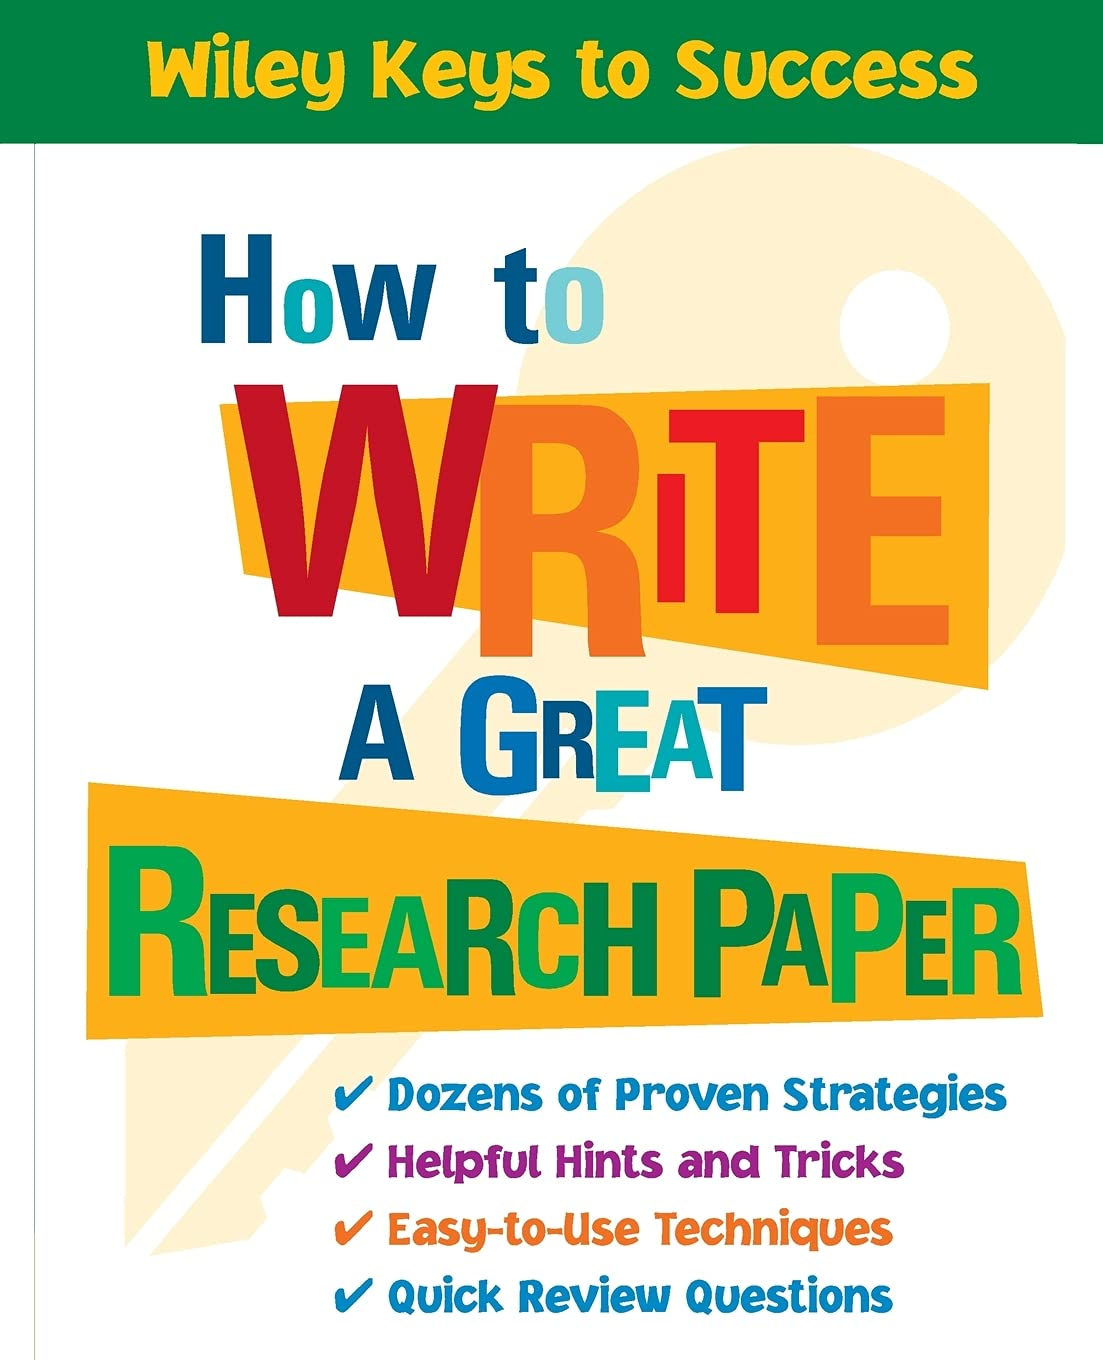 How to Write a Great Research Paper (Wiley Keys to Success) : Chin